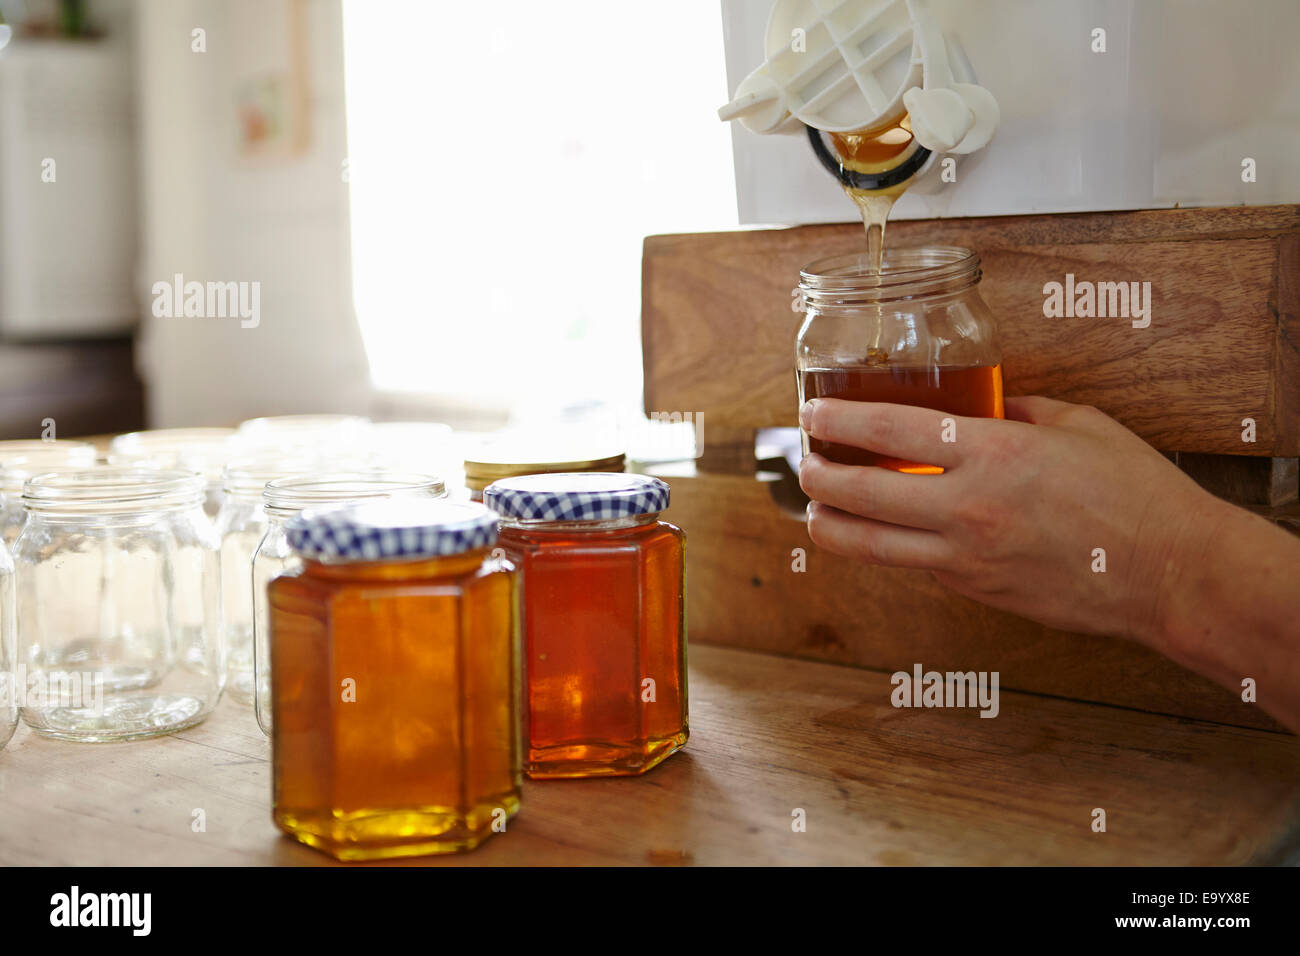 Hand of female beekeeper in kitchen bottling up filtered honey from beehive - Stock Image